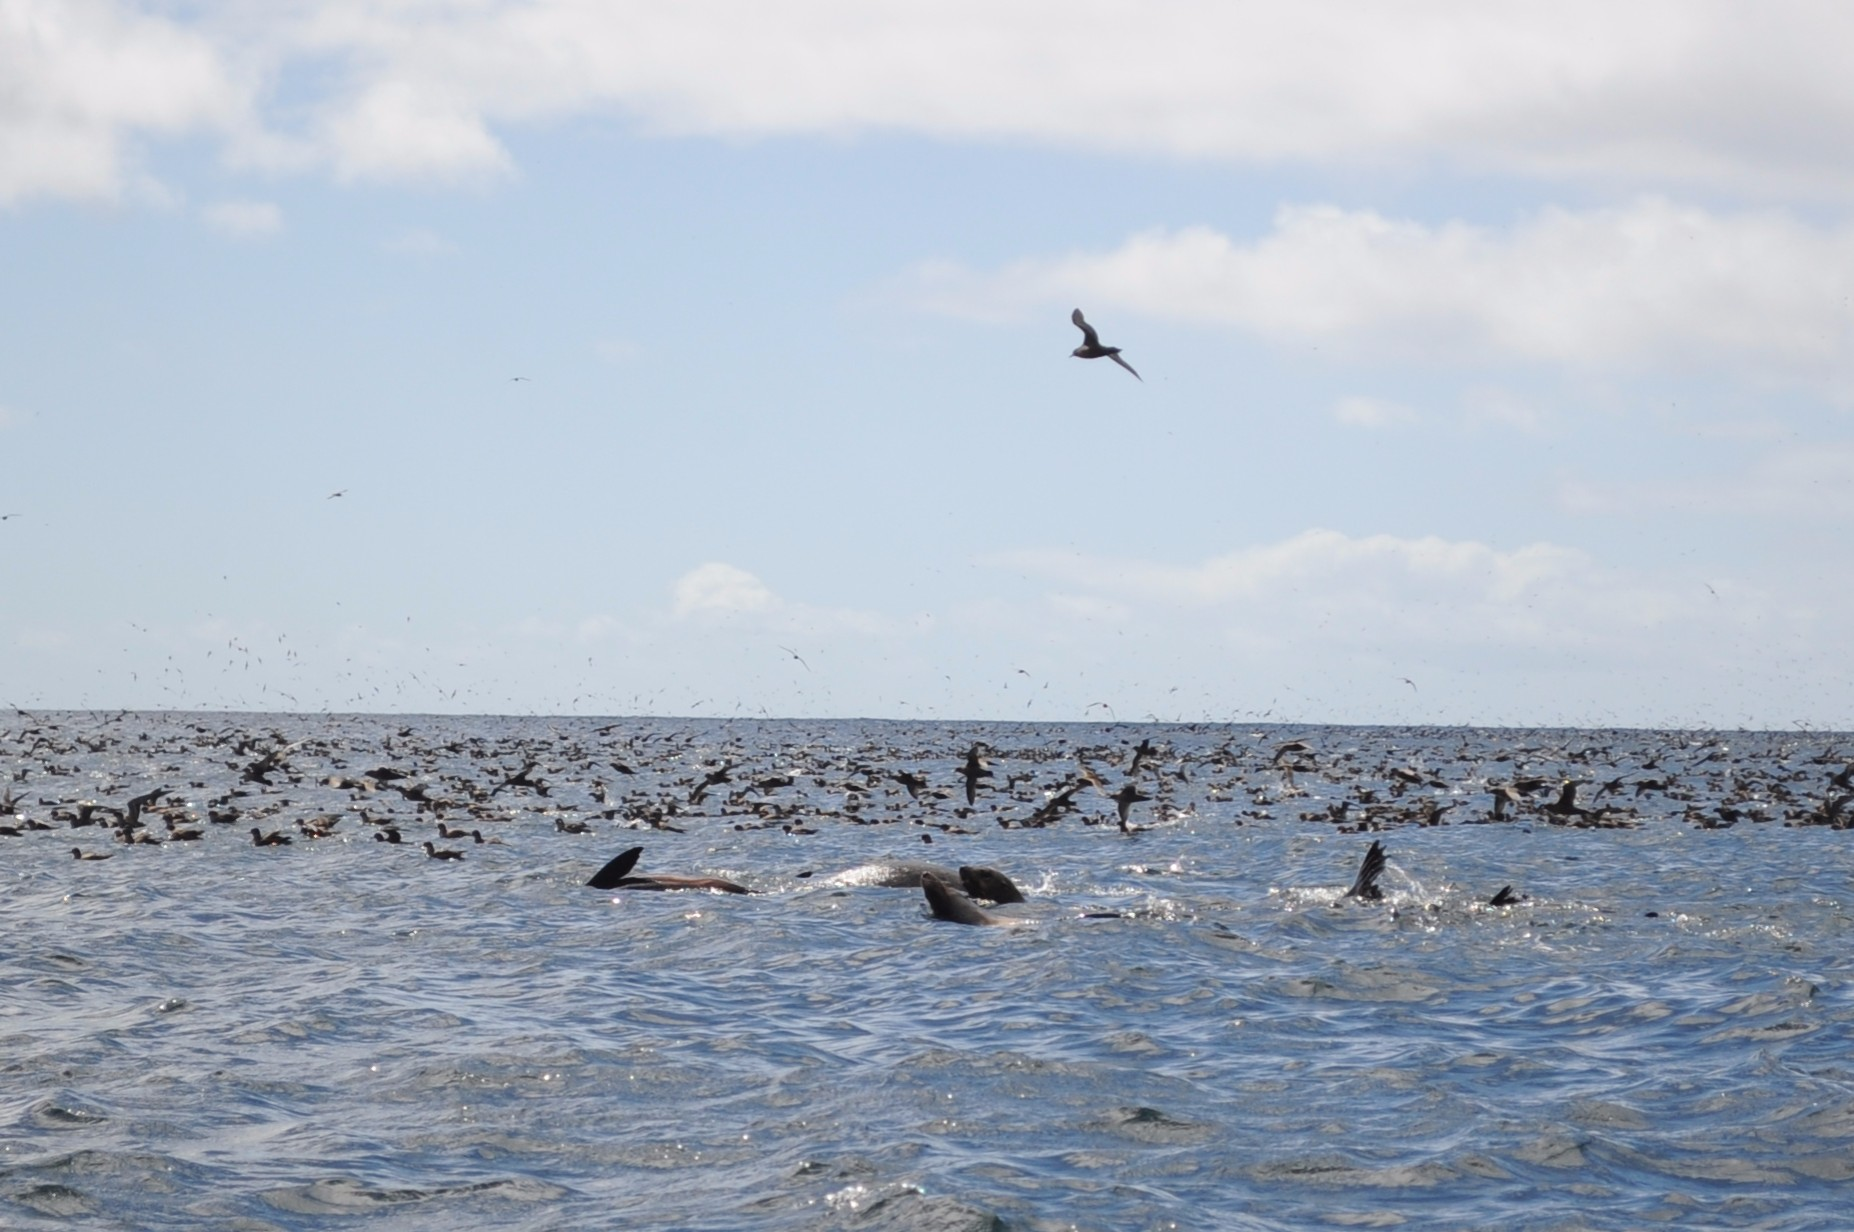 Fur seals in the water with the shearwaters.